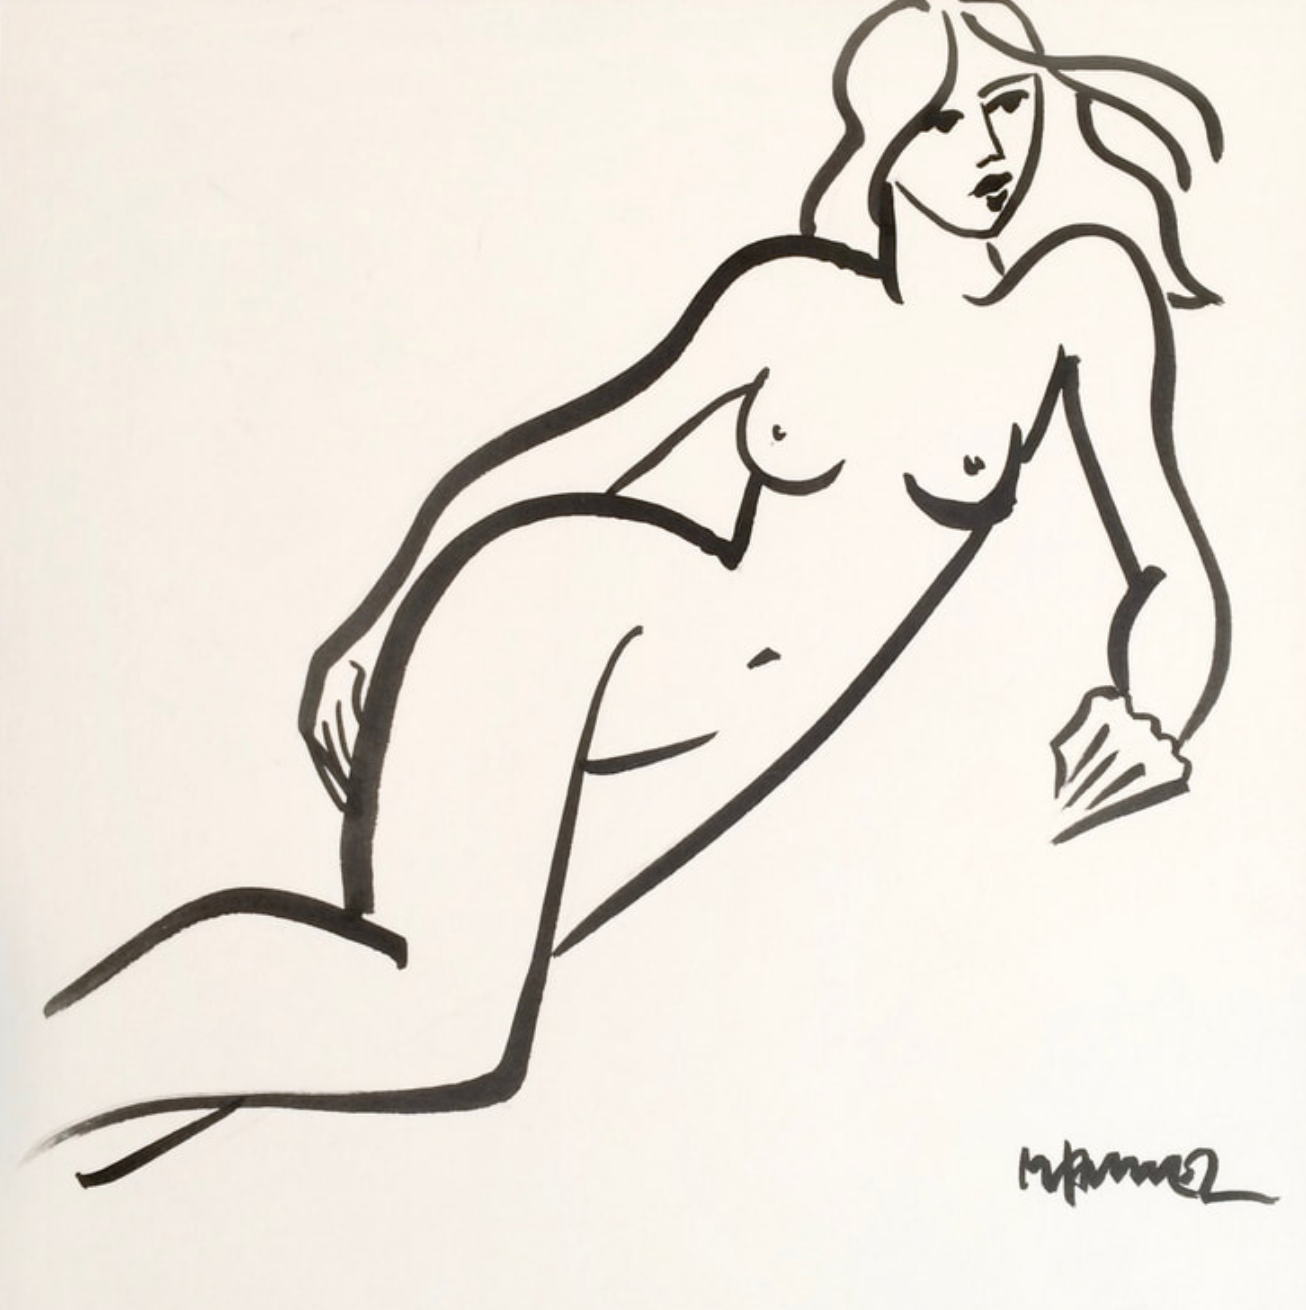 11.25 x 10.25 Nude Ink #1489